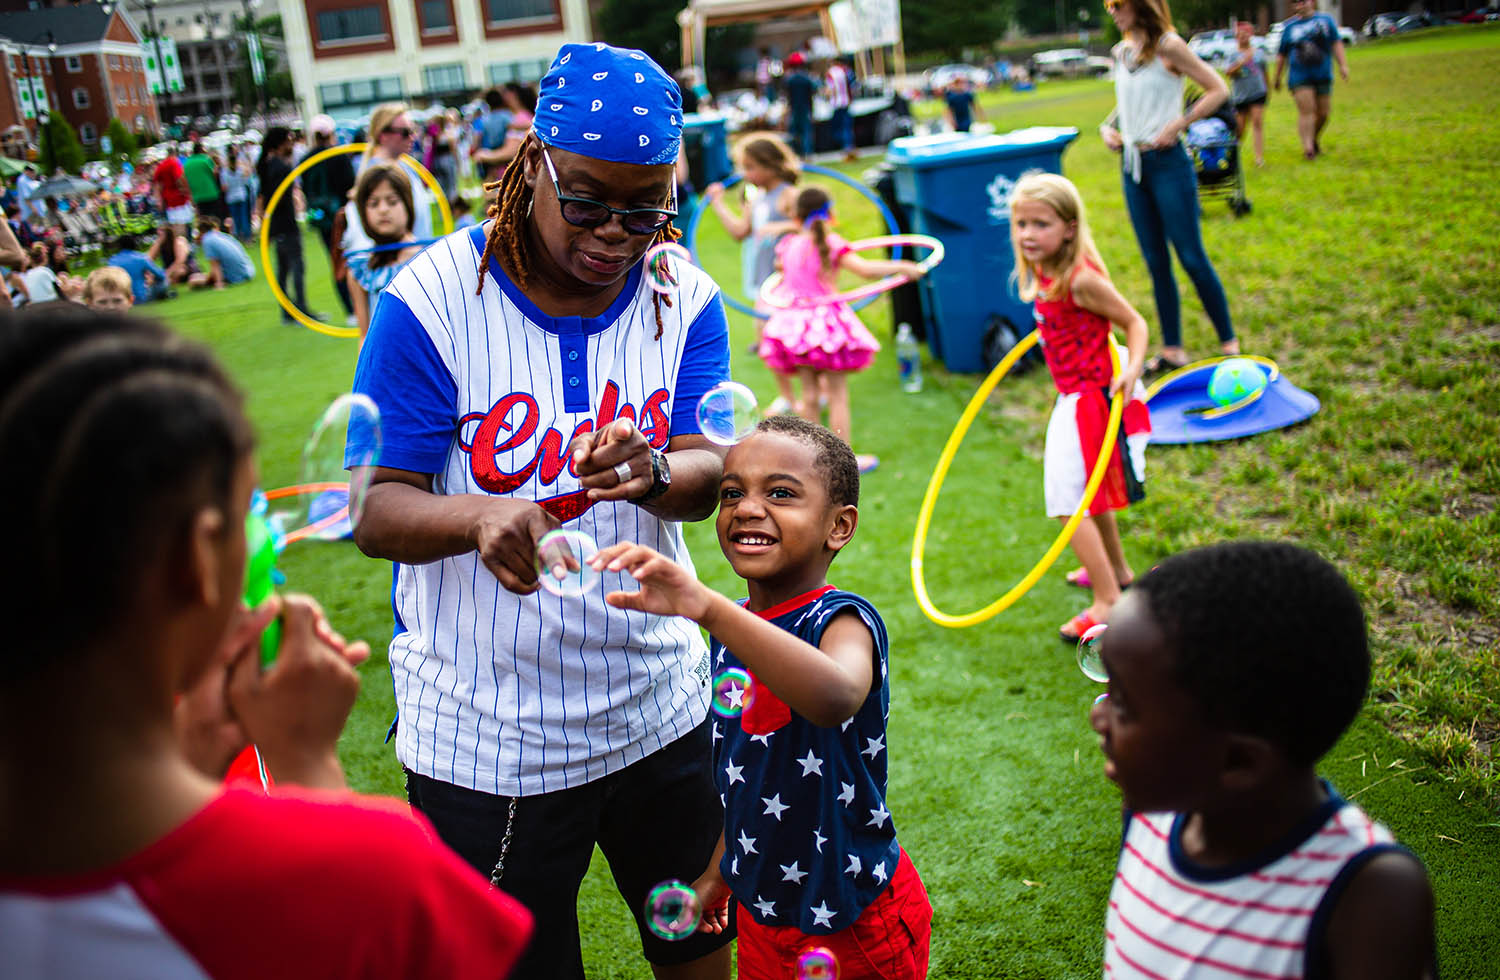 Levi Allan, 5, plays with a bubble machine with his grandmother, Leslie Favors, in the children's area during the Levitt AMP Springfield Music Series on the Y-Block , Thursday, July 4, 2019, in Springfield, Ill. [Justin L. Fowler/The State Journal-Register]